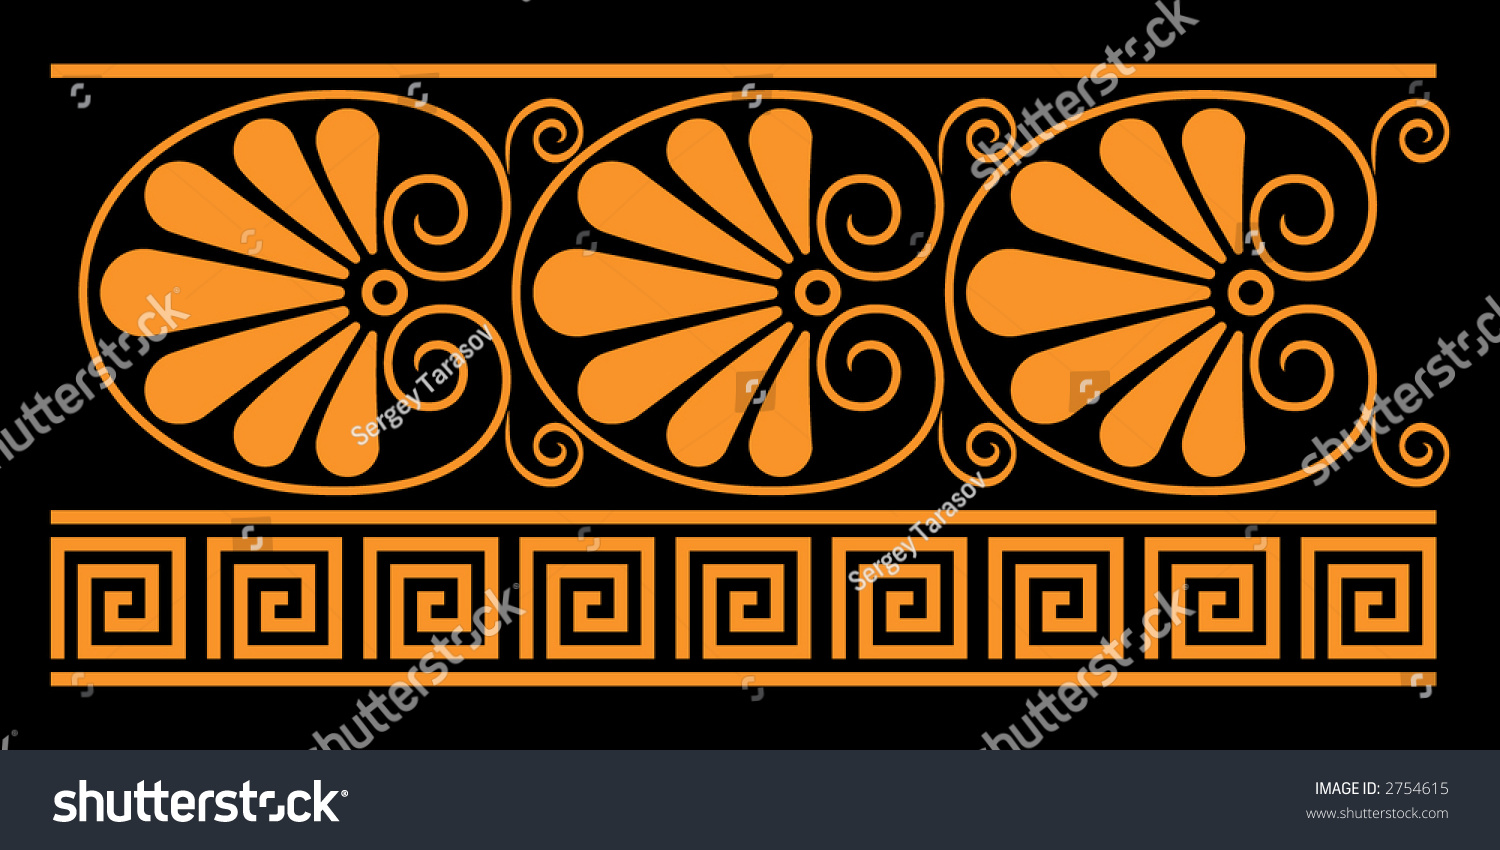 Ancient greek decorative elements they were stock vector 2754615 ancient greek decorative elements they were used for vase painting in ancient greece reviewsmspy